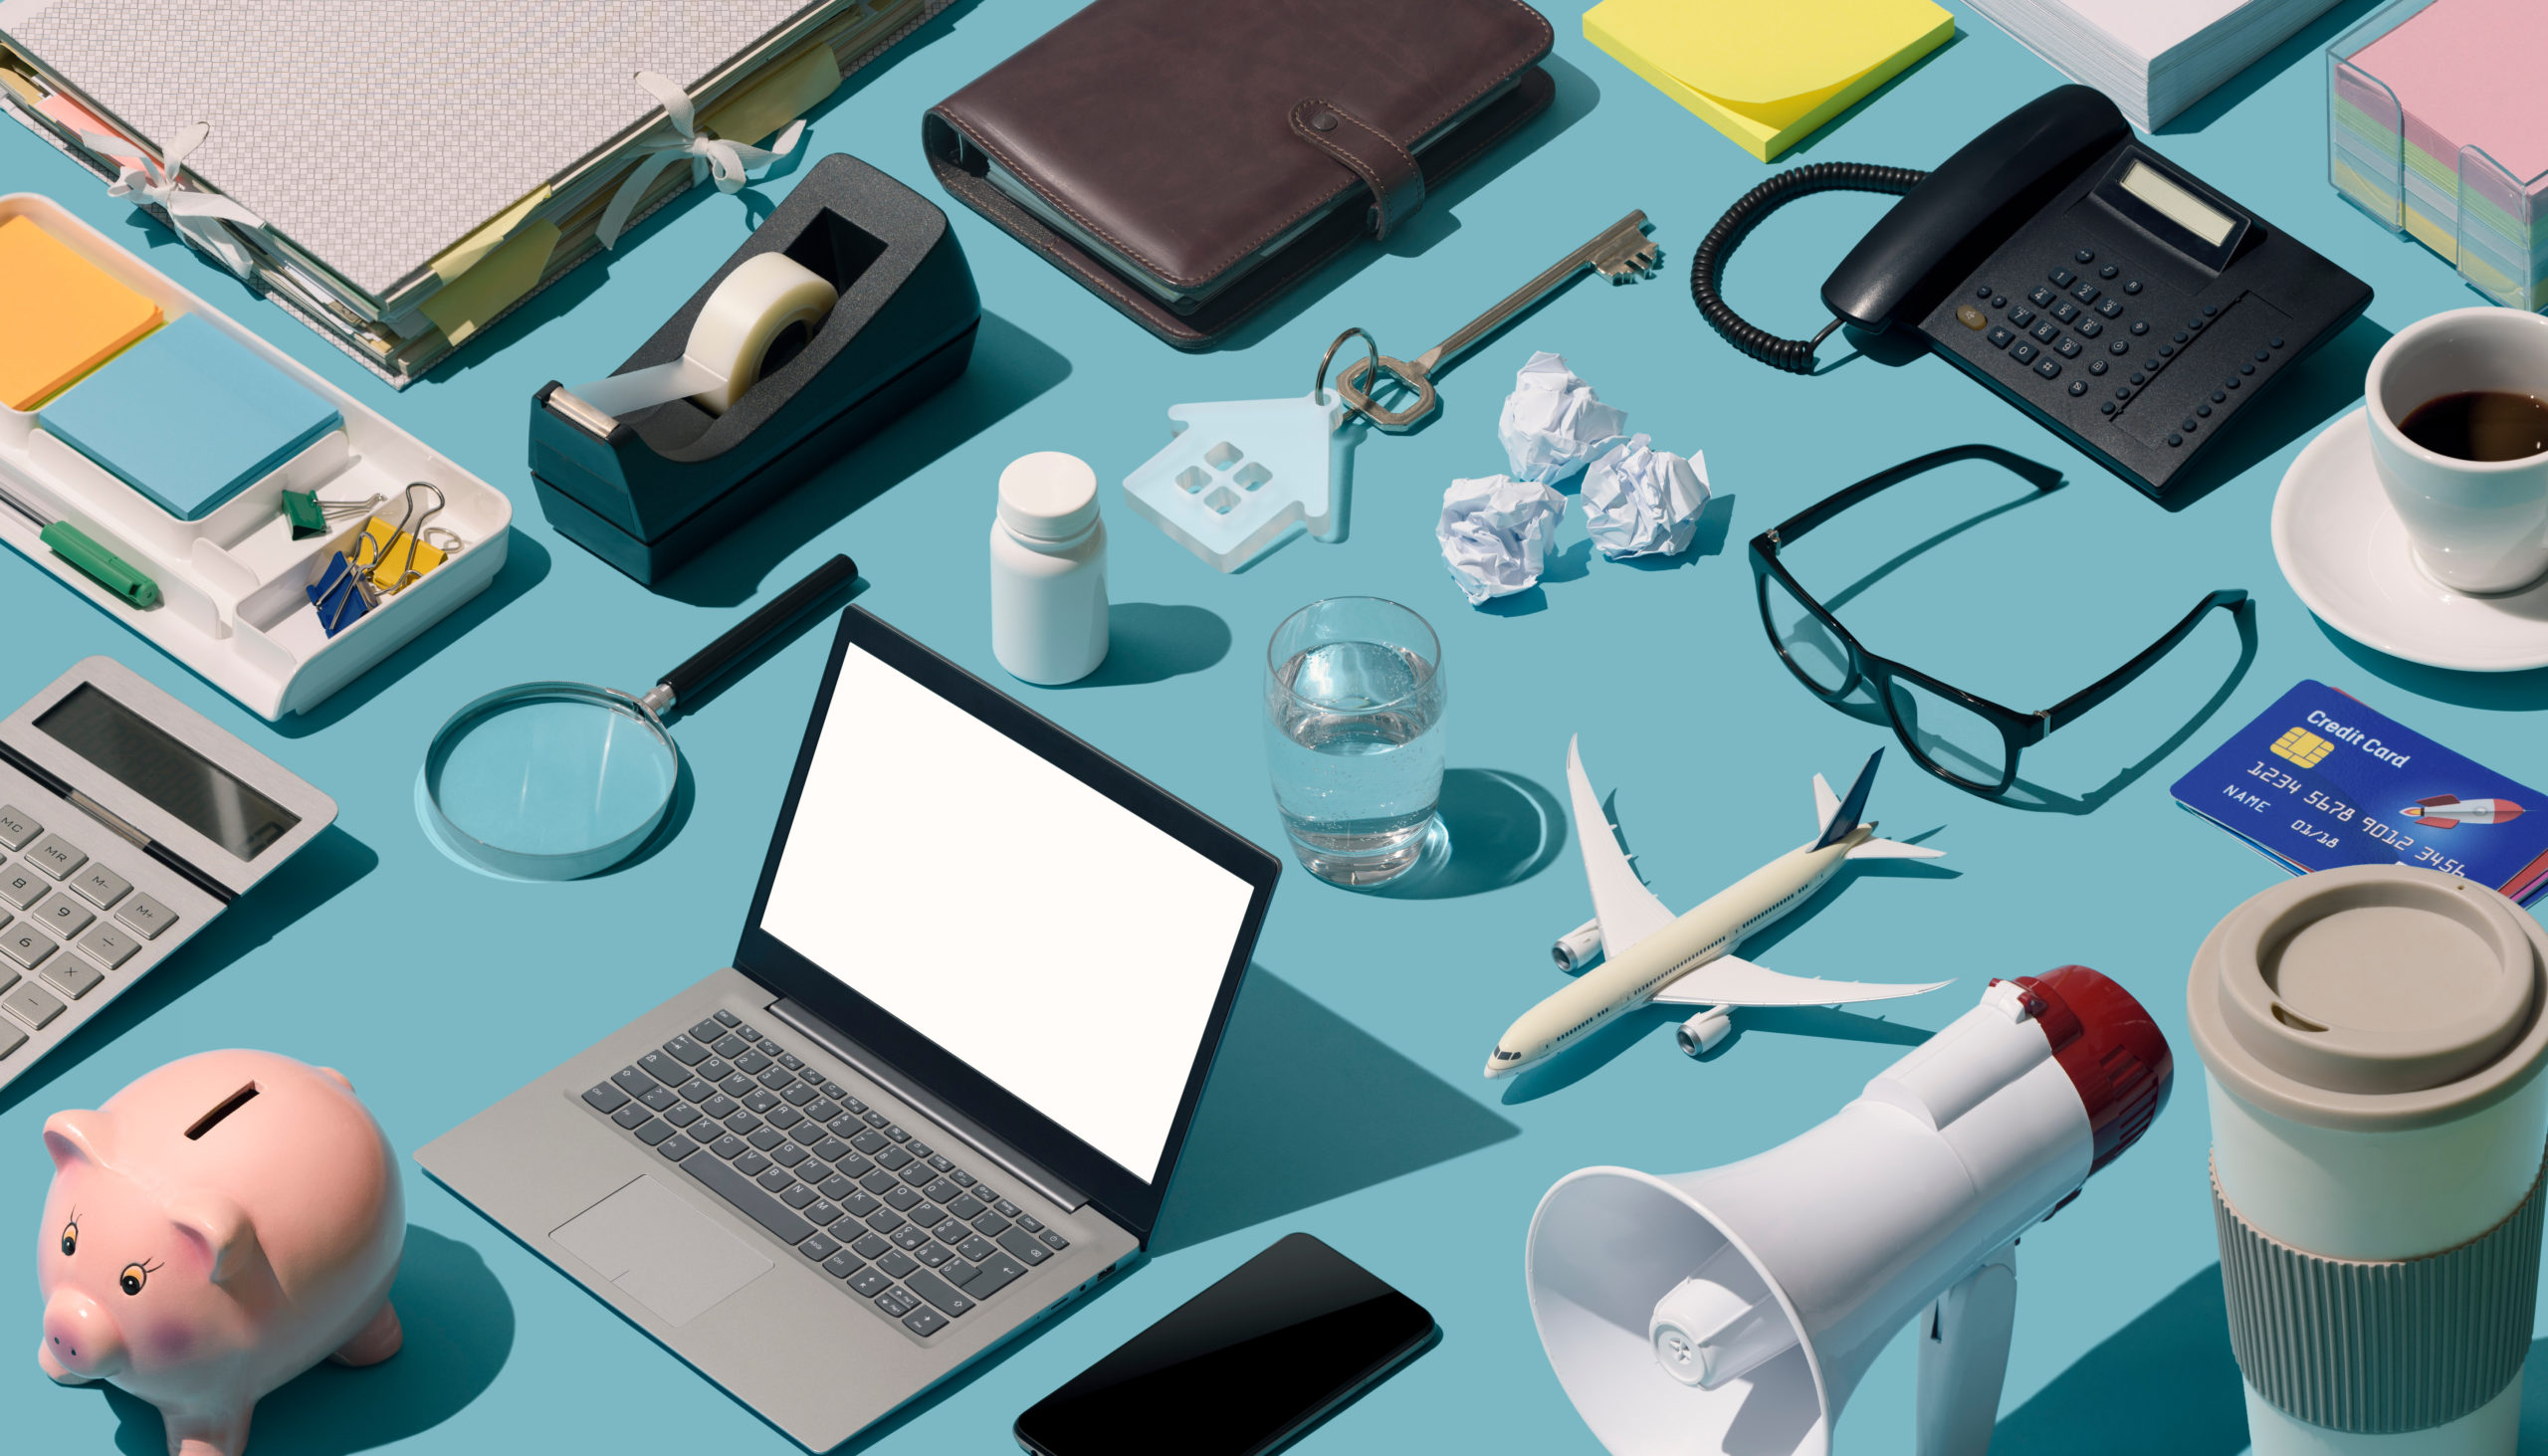 A working desk, but a little too much clutter. Some good organizing can reduce this to a manageable state.